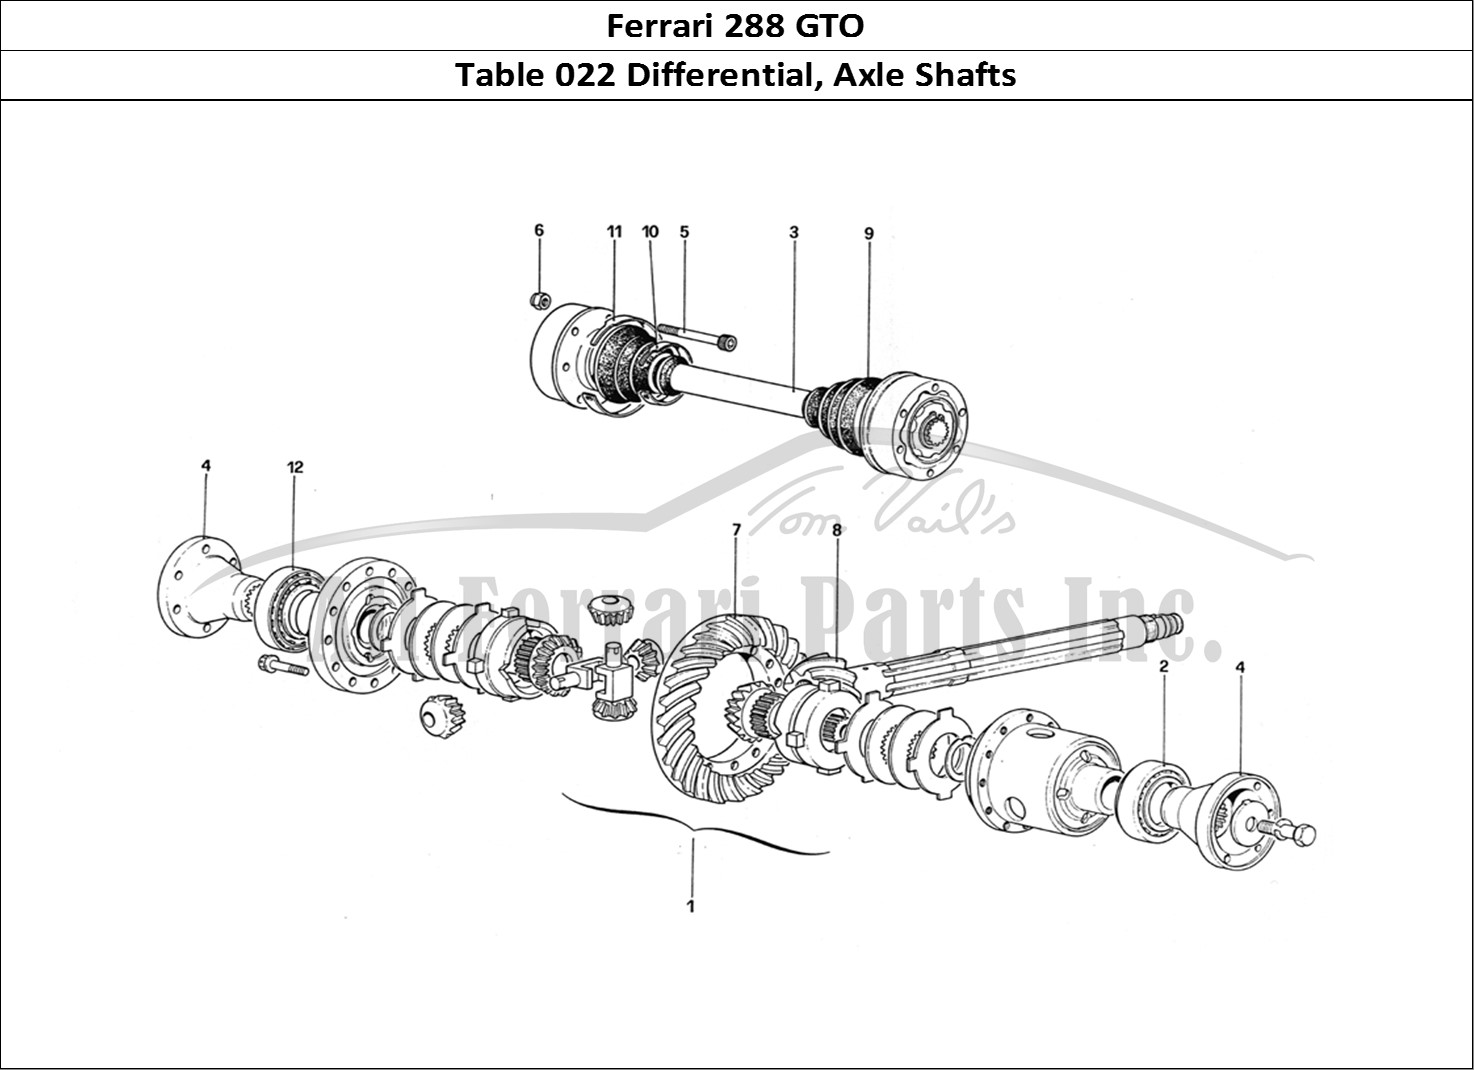 Buy original Ferrari 288 GTO 022 Differential, Axle Shafts